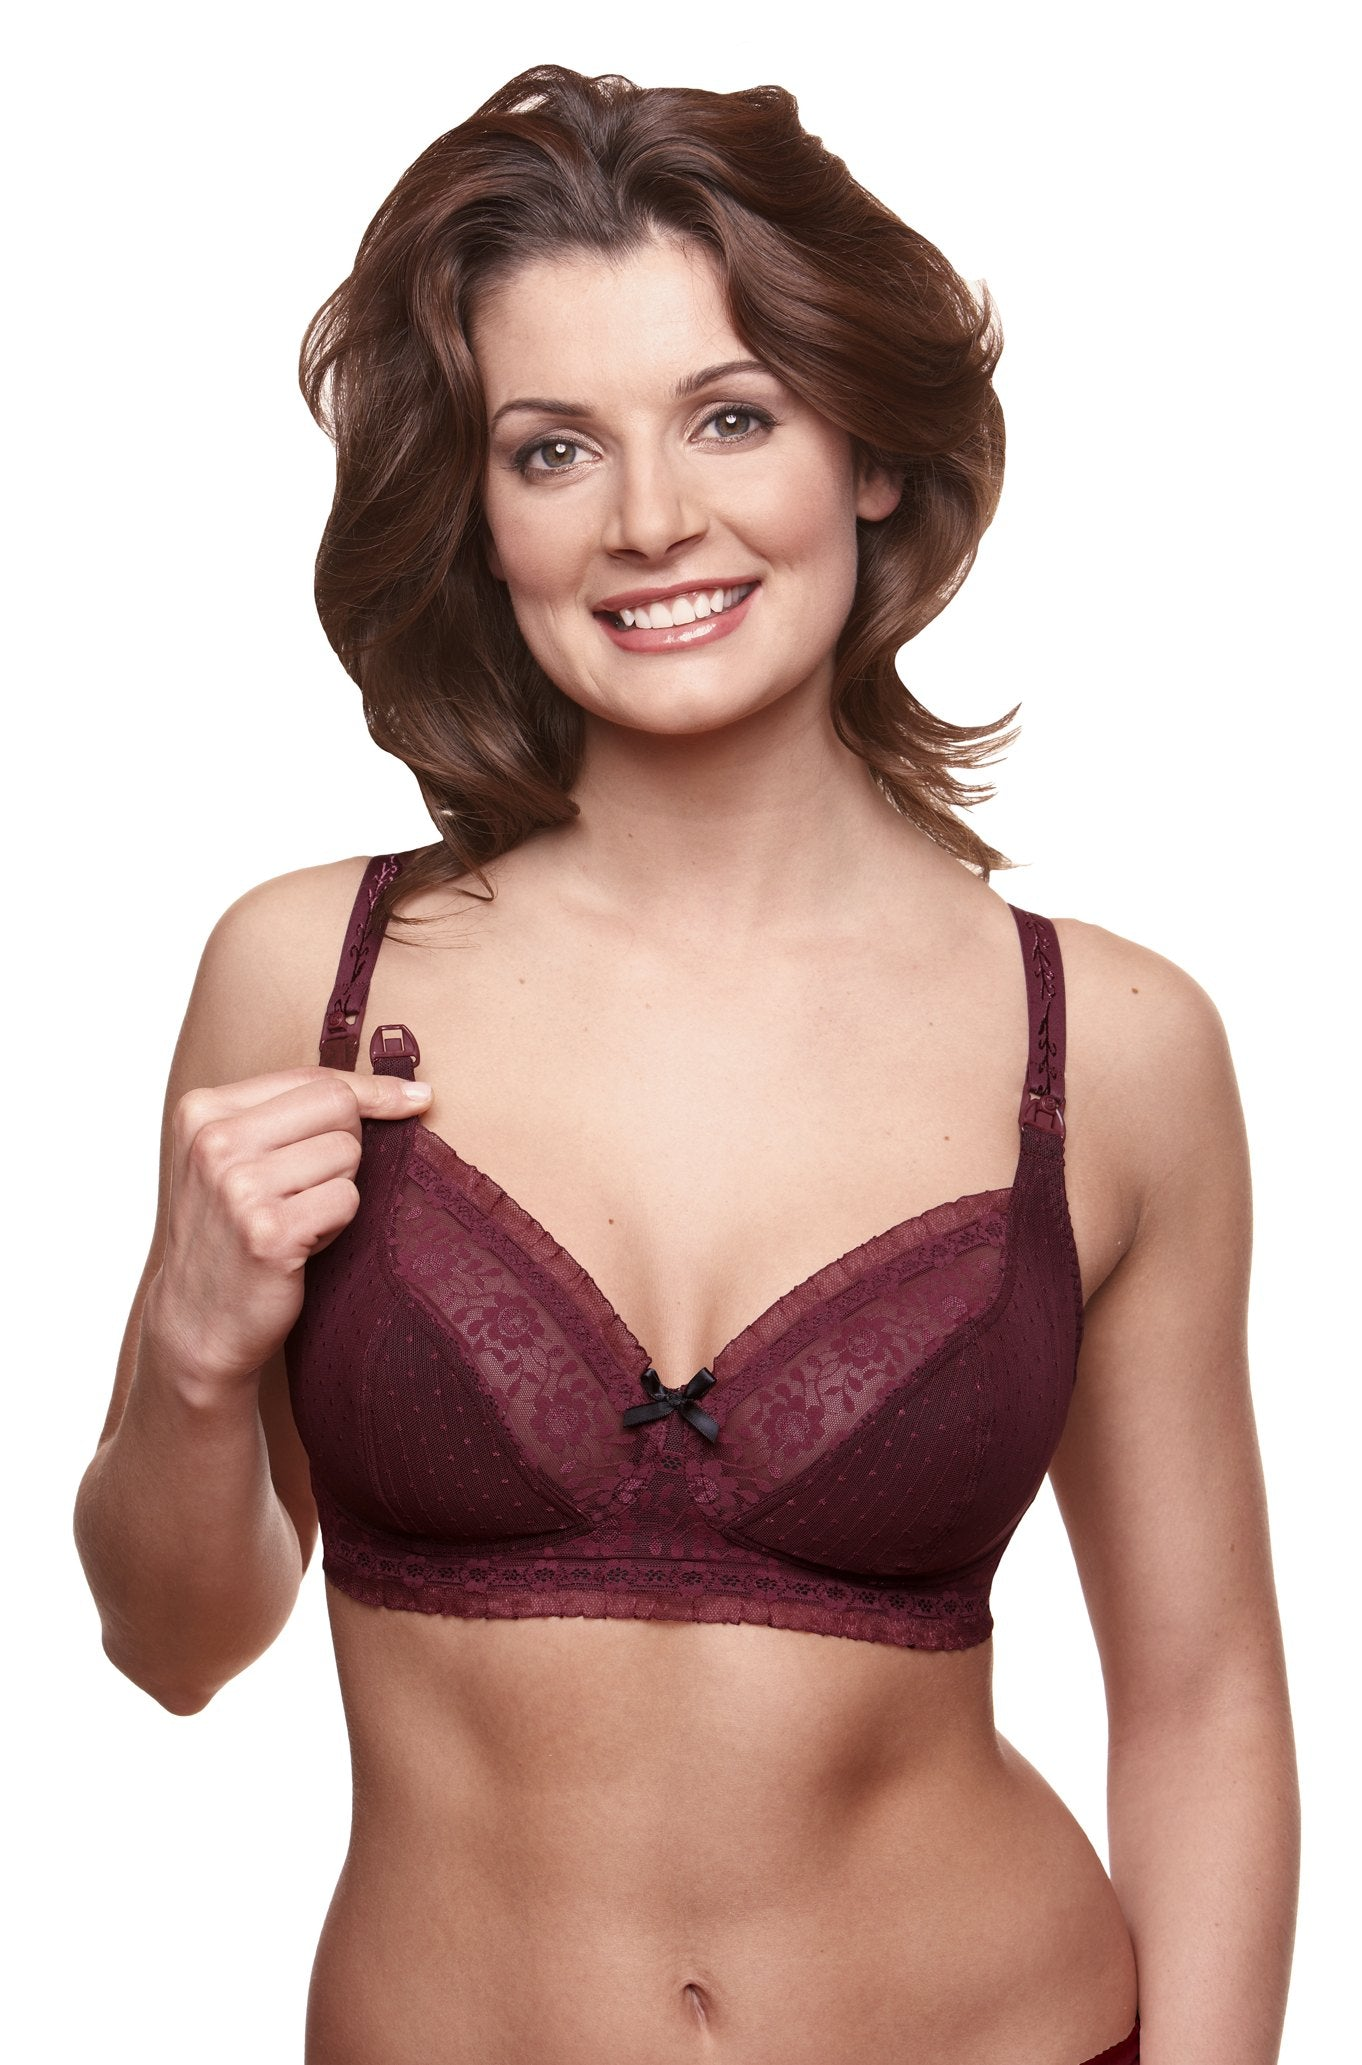 0732a4746f Nursing Bras - One Hot Mama Maternity